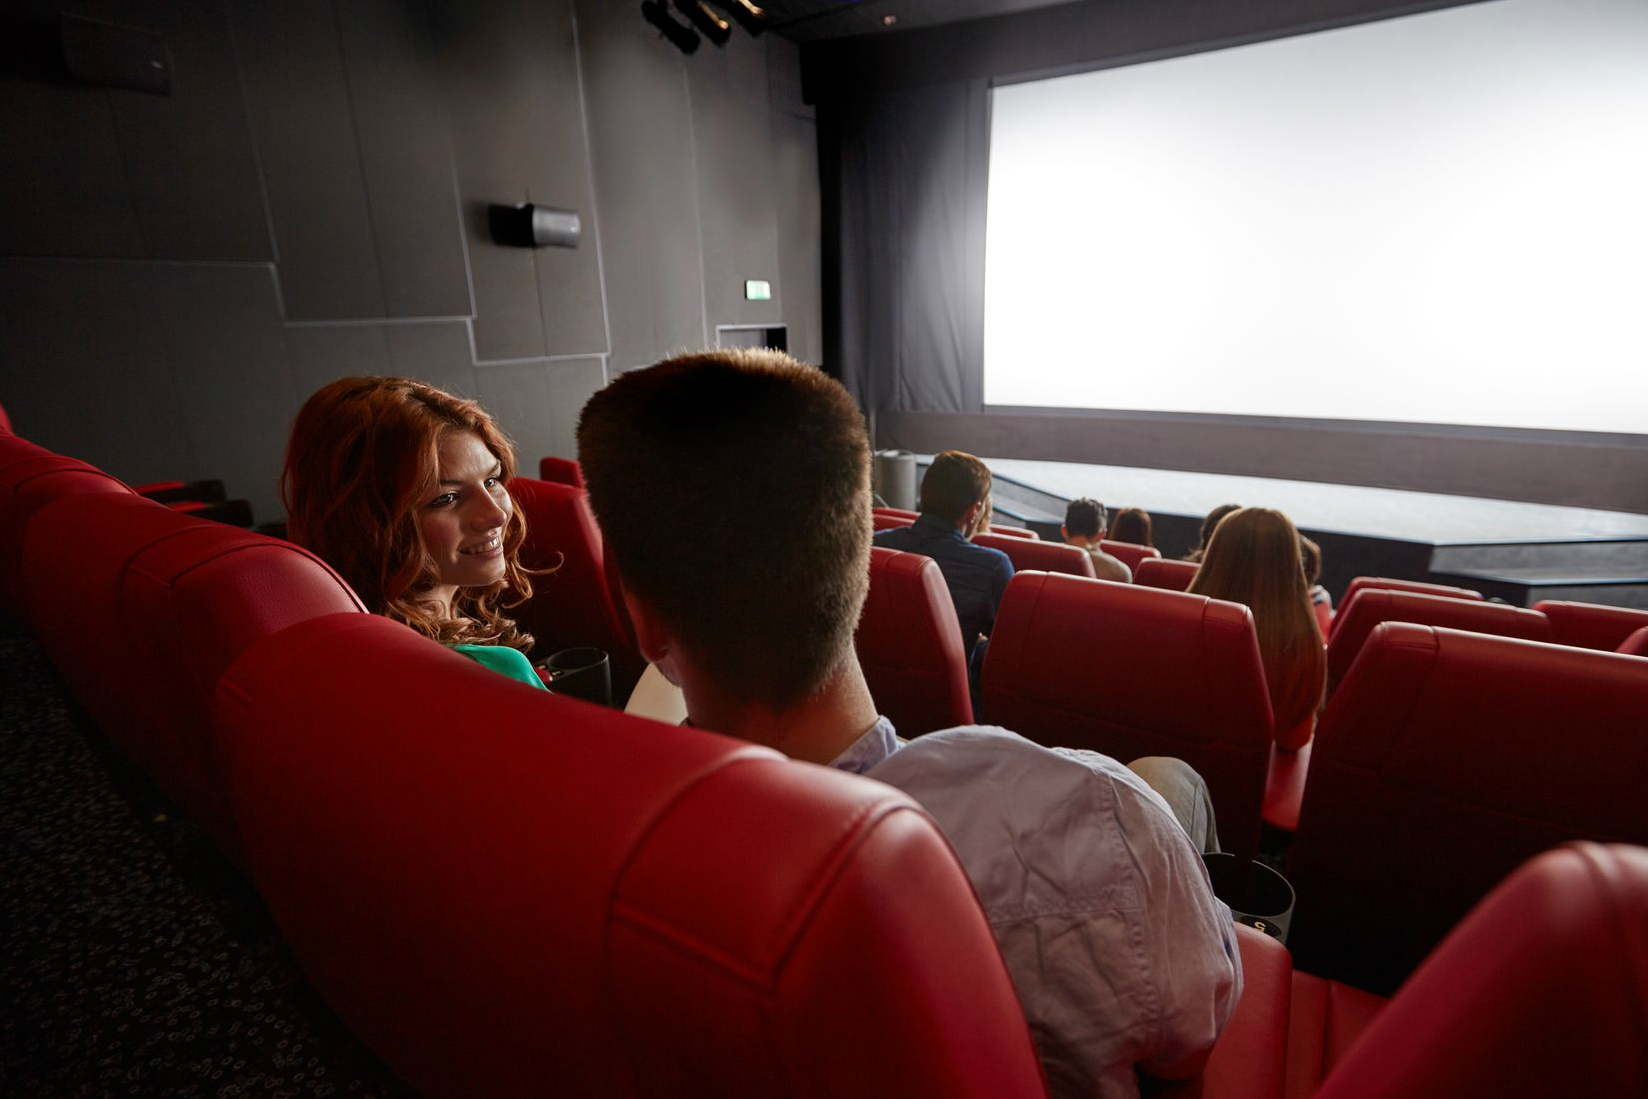 Moviepass 10 Plan For Near Unlimited Movies Surpasses 2